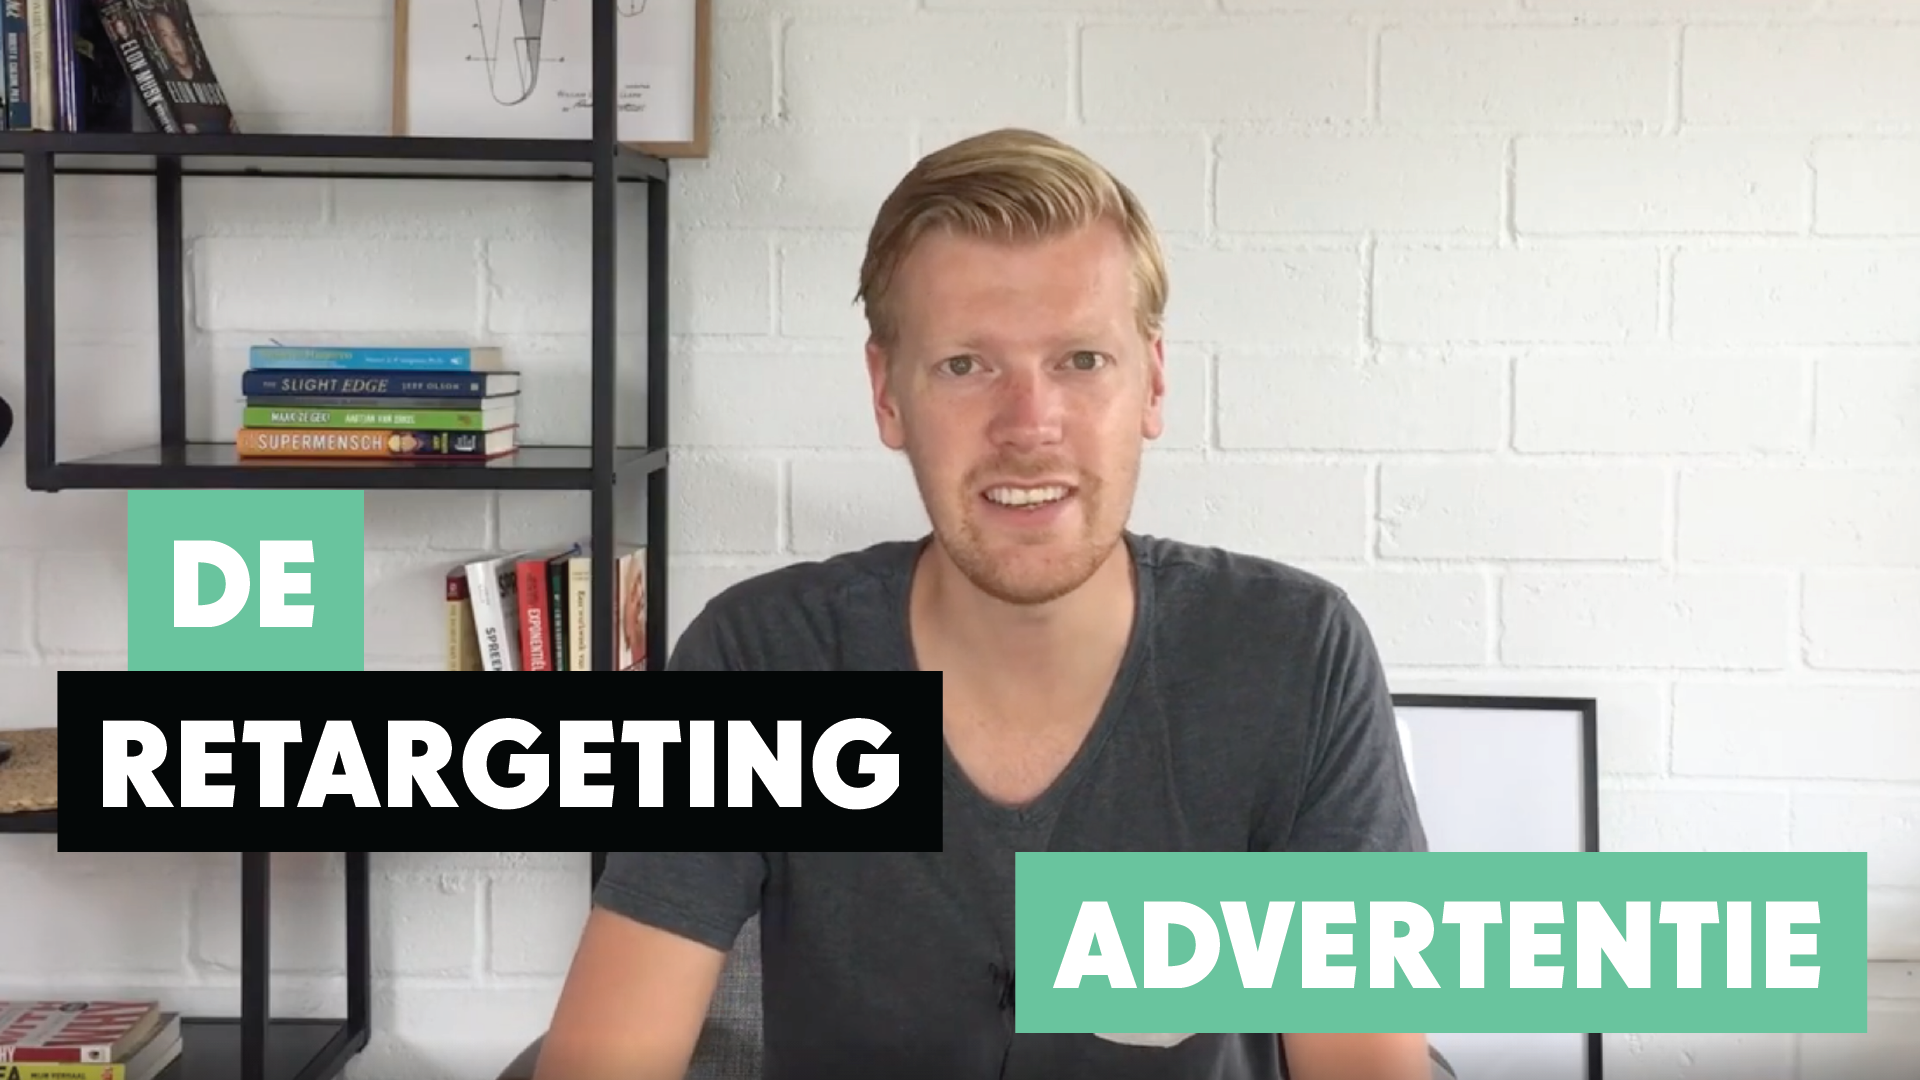 De retargeting advertentie